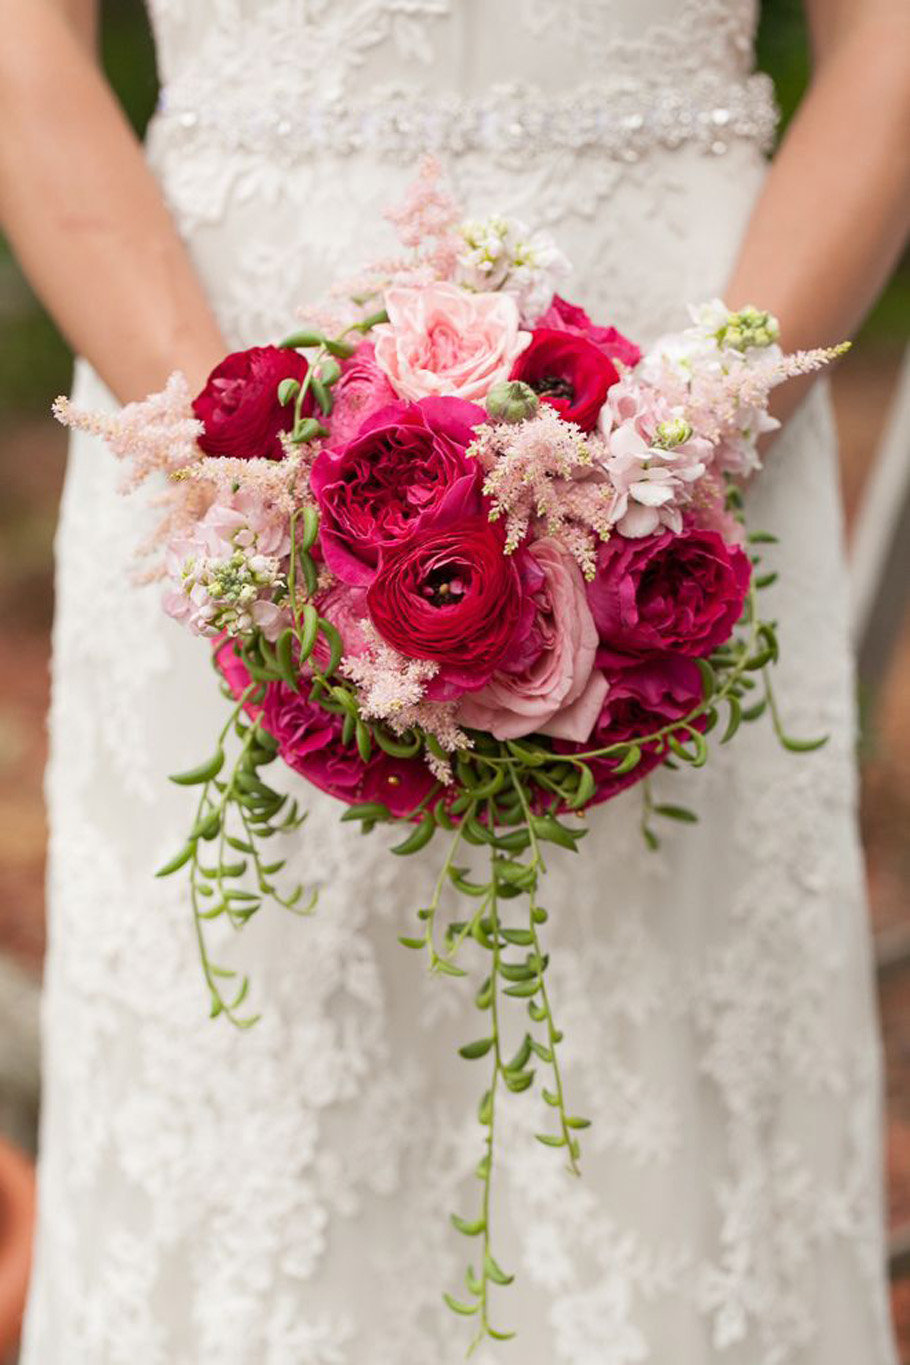 austin wedding flowers get inspired fabulous flowers for the big day bridalguide 1396